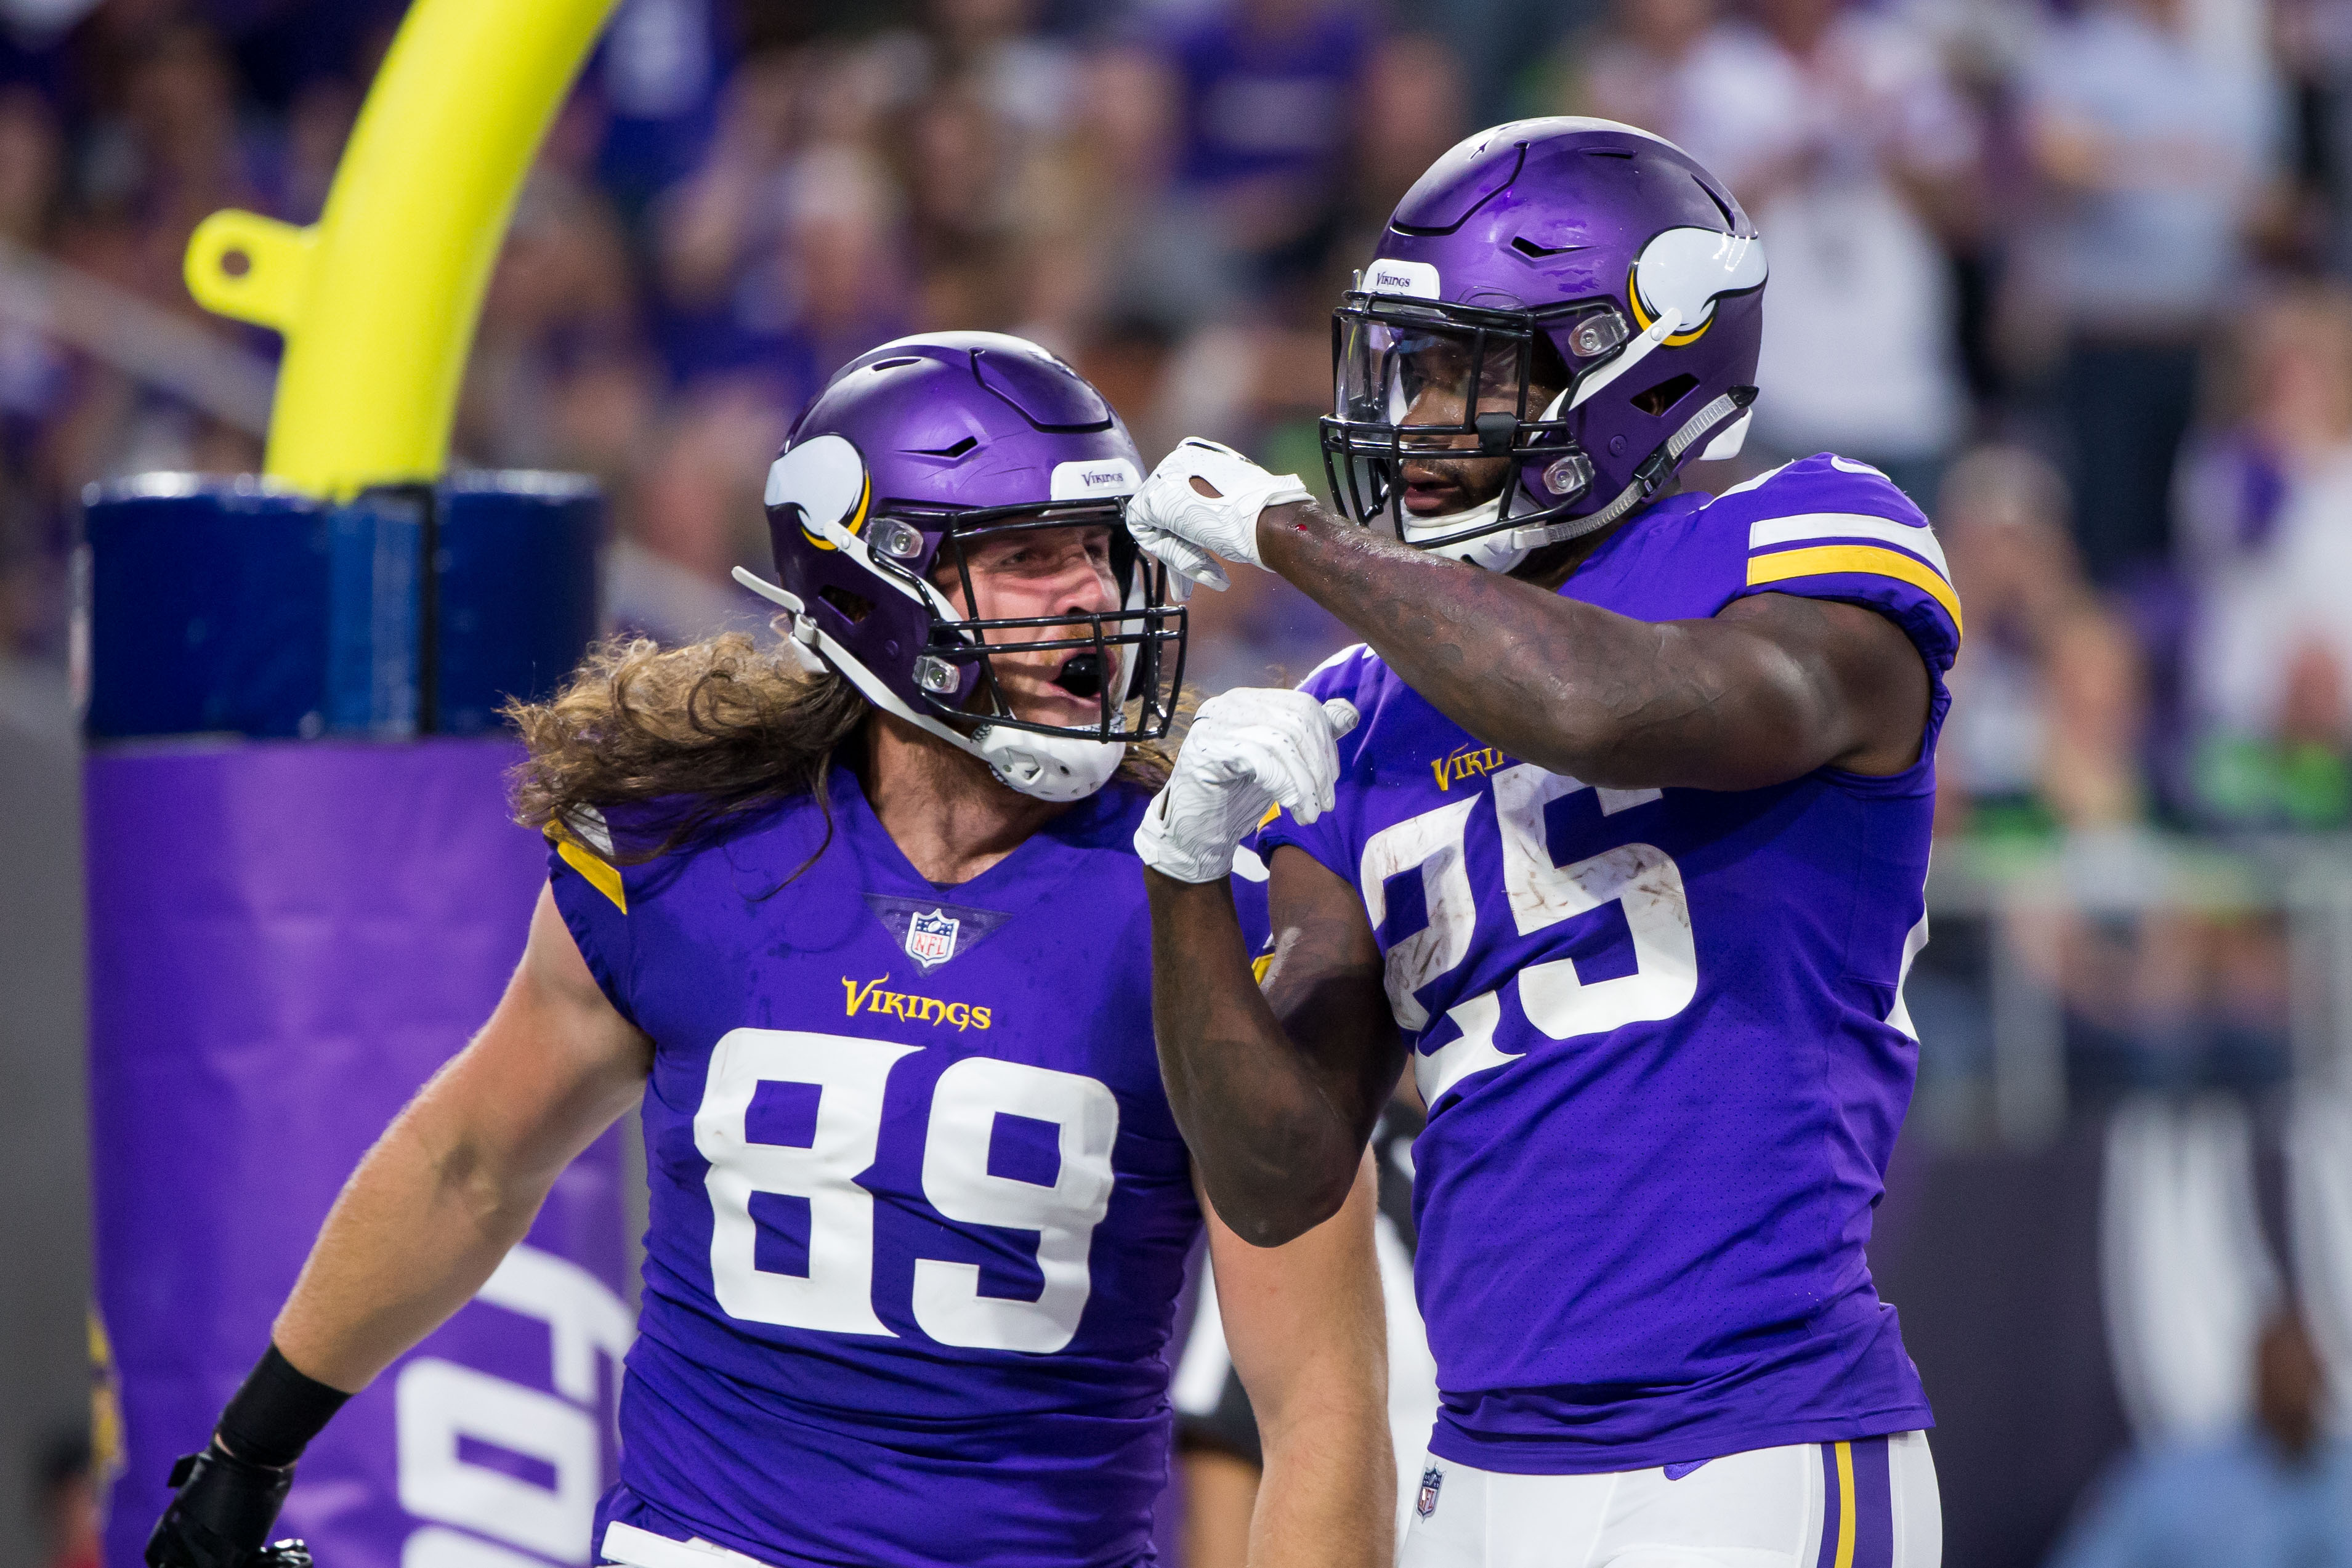 Aug 24, 2018; Minneapolis, MN, USA; Minnesota Vikings running back Latavius Murray (25) celebrates his touchdown with tight end David Morgan (89) in the second quarter against Seattle Seahawks at U.S. Bank Stadium. Mandatory Credit: Brad Rempel-USA TODAY Sports